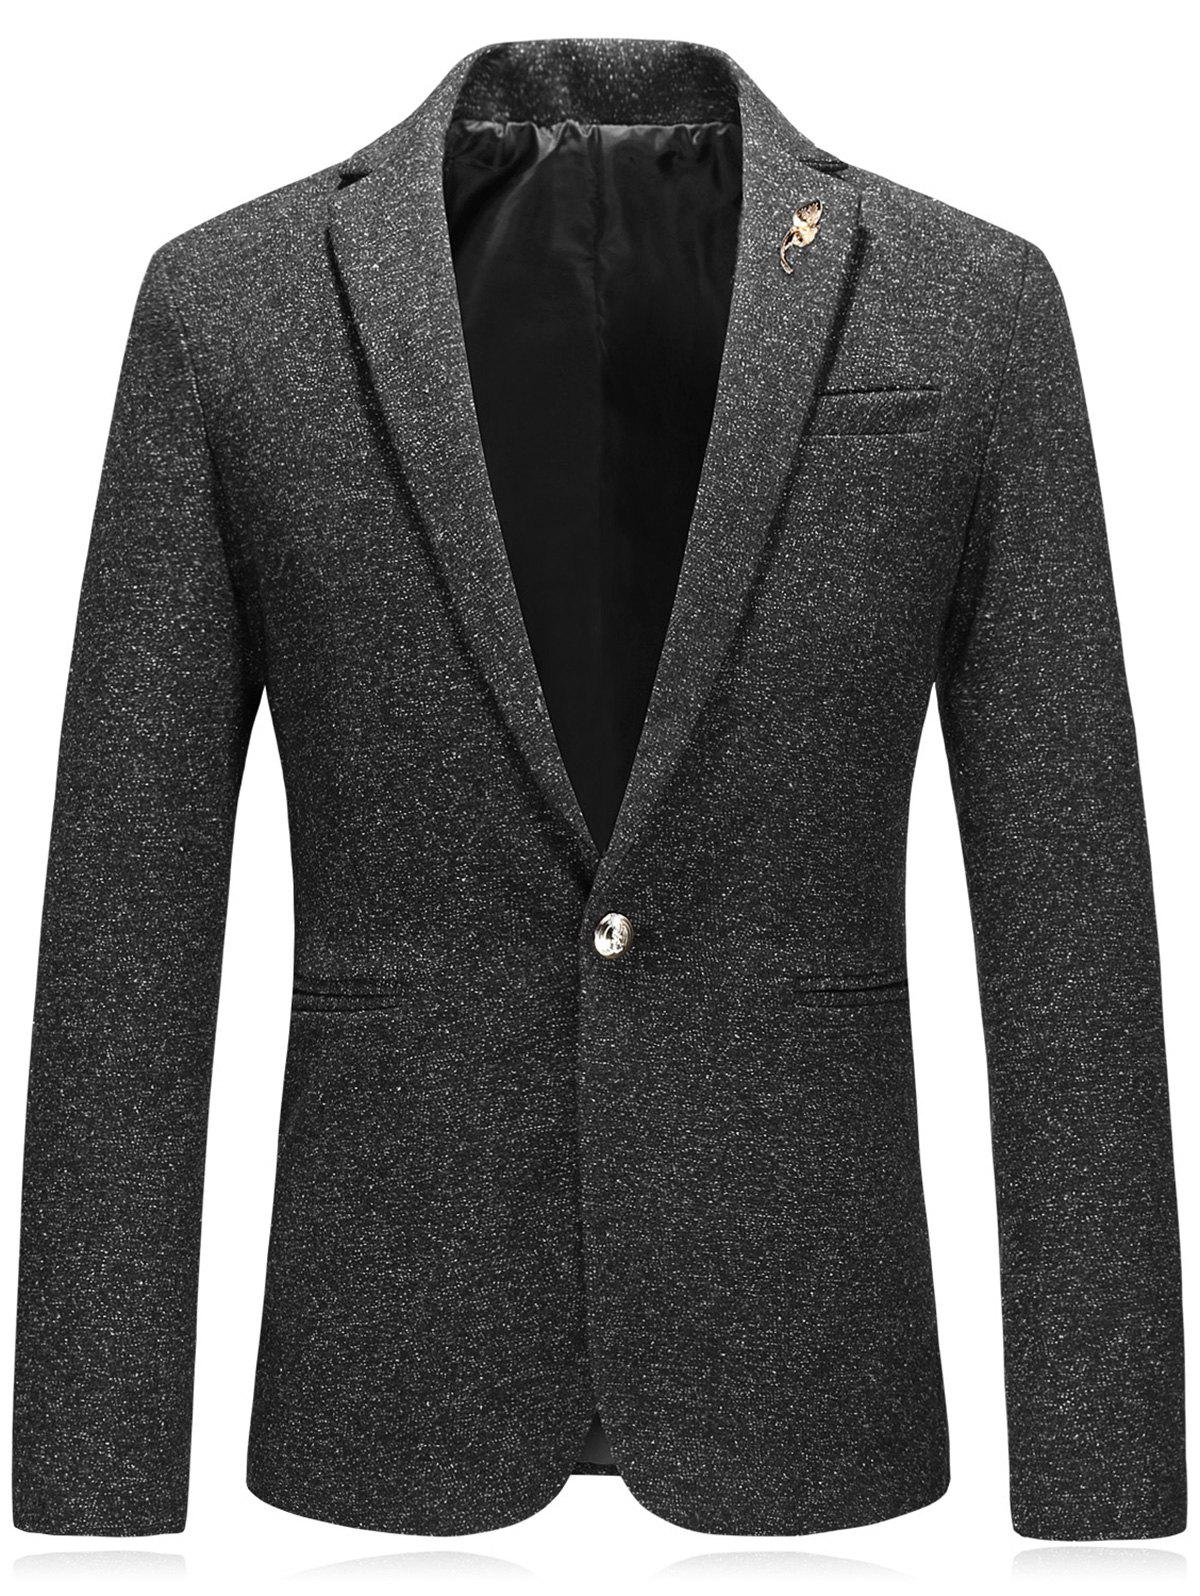 Online Edging Leaf Embellished Woolen Blazer